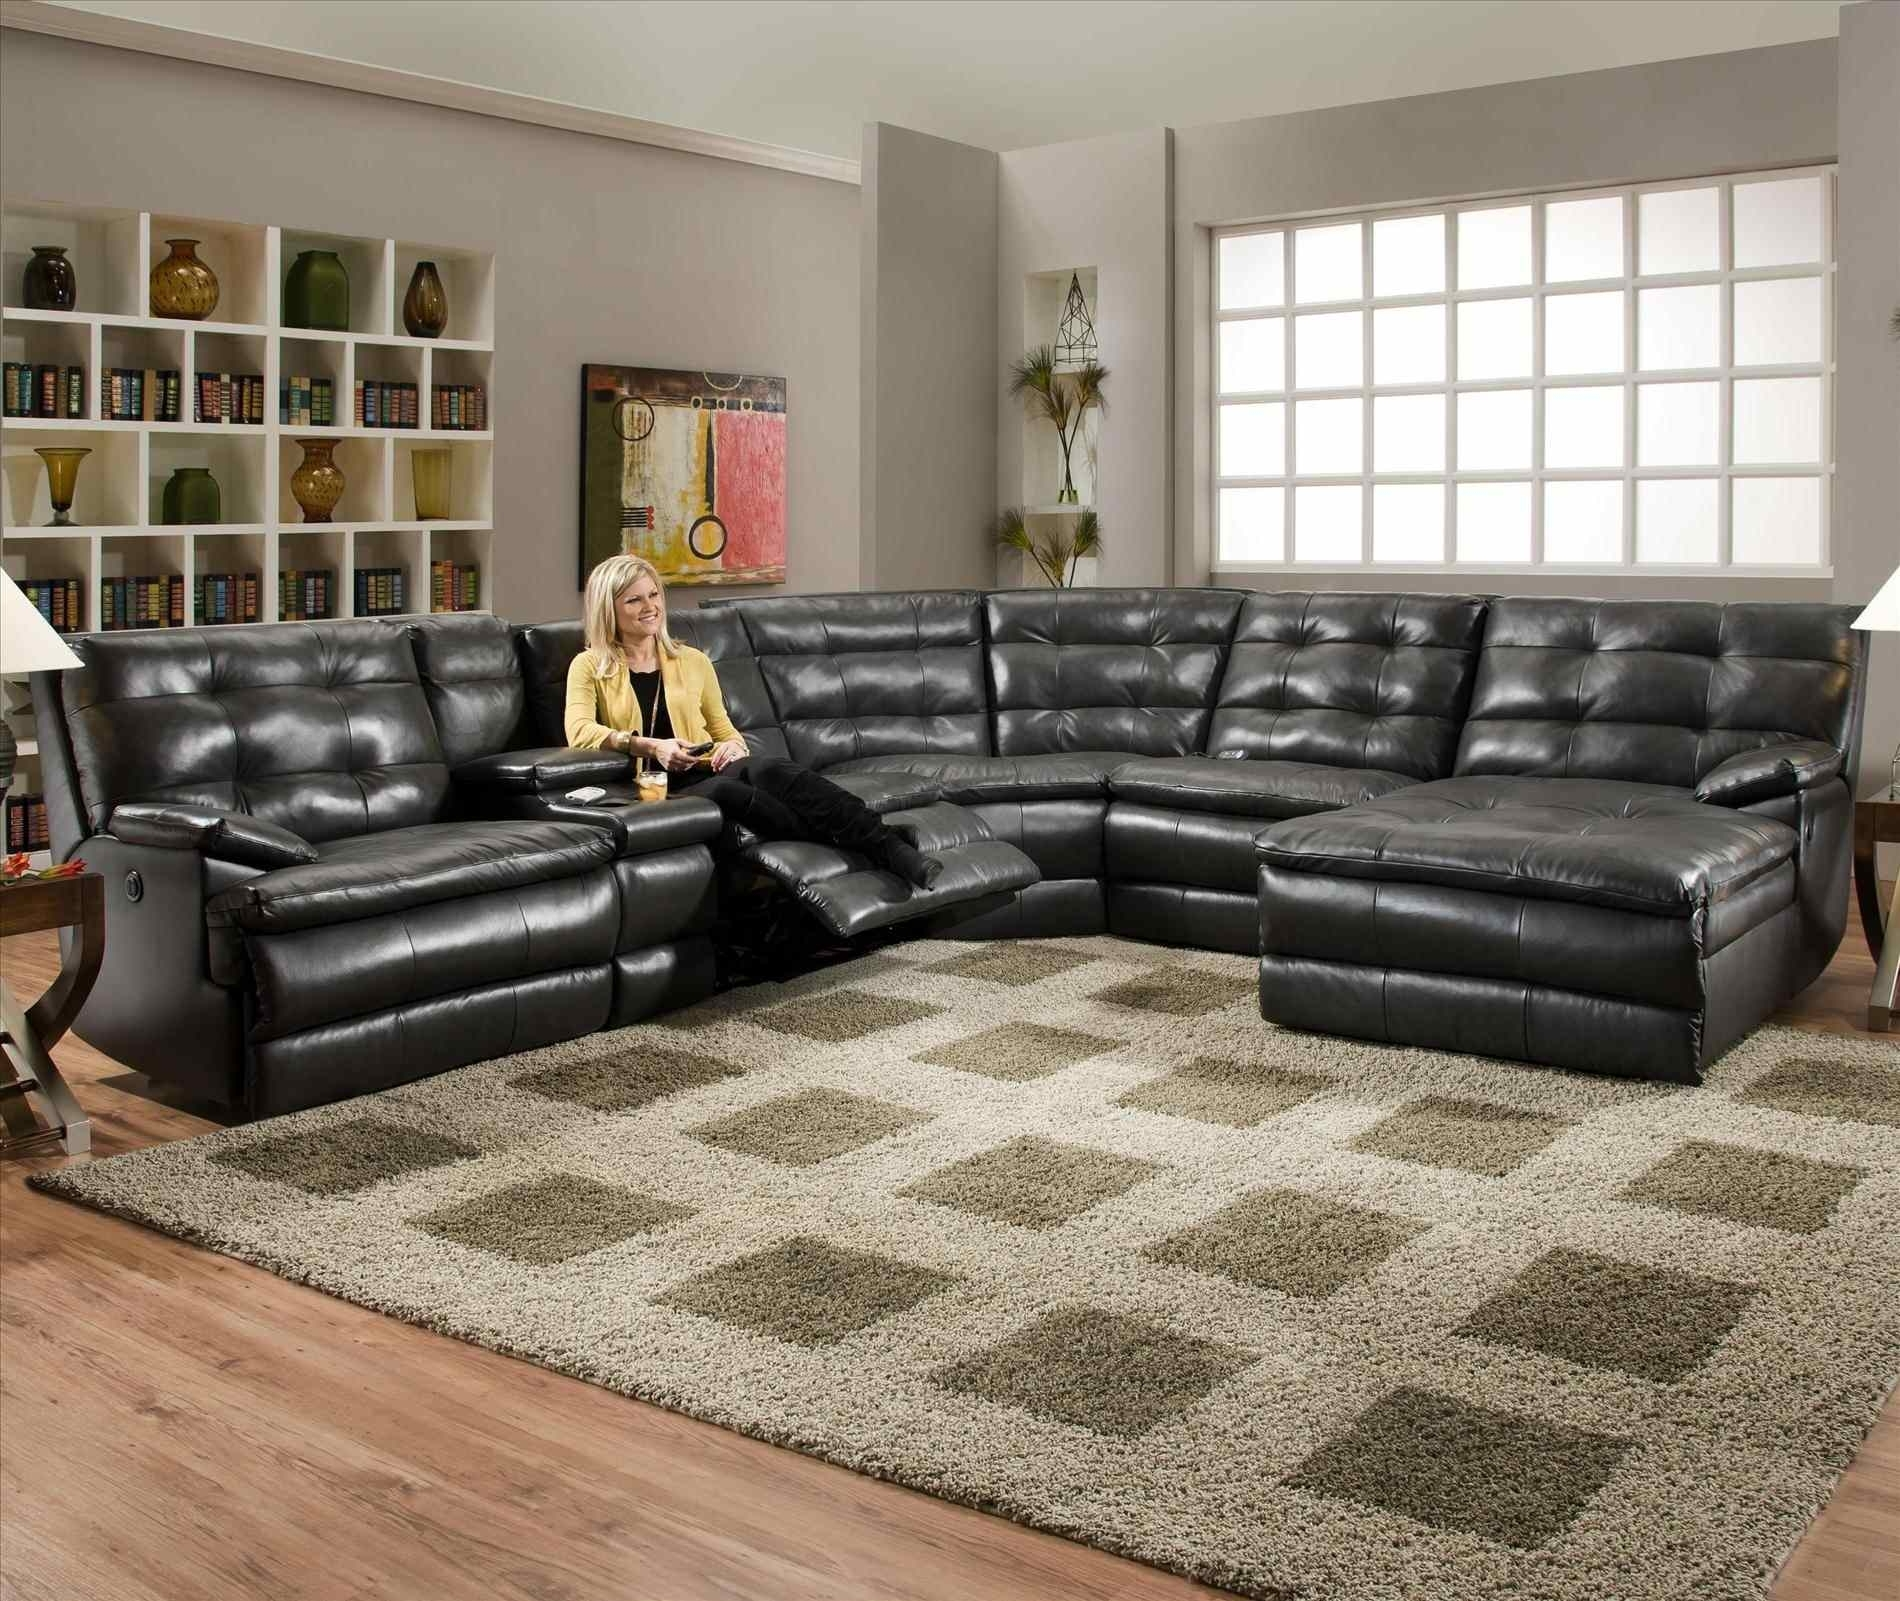 Couch : Furniture Bad Boy Sectional Es Wrap Around Couch Furniture Within Sectional Sofas At Bad Boy (View 9 of 15)